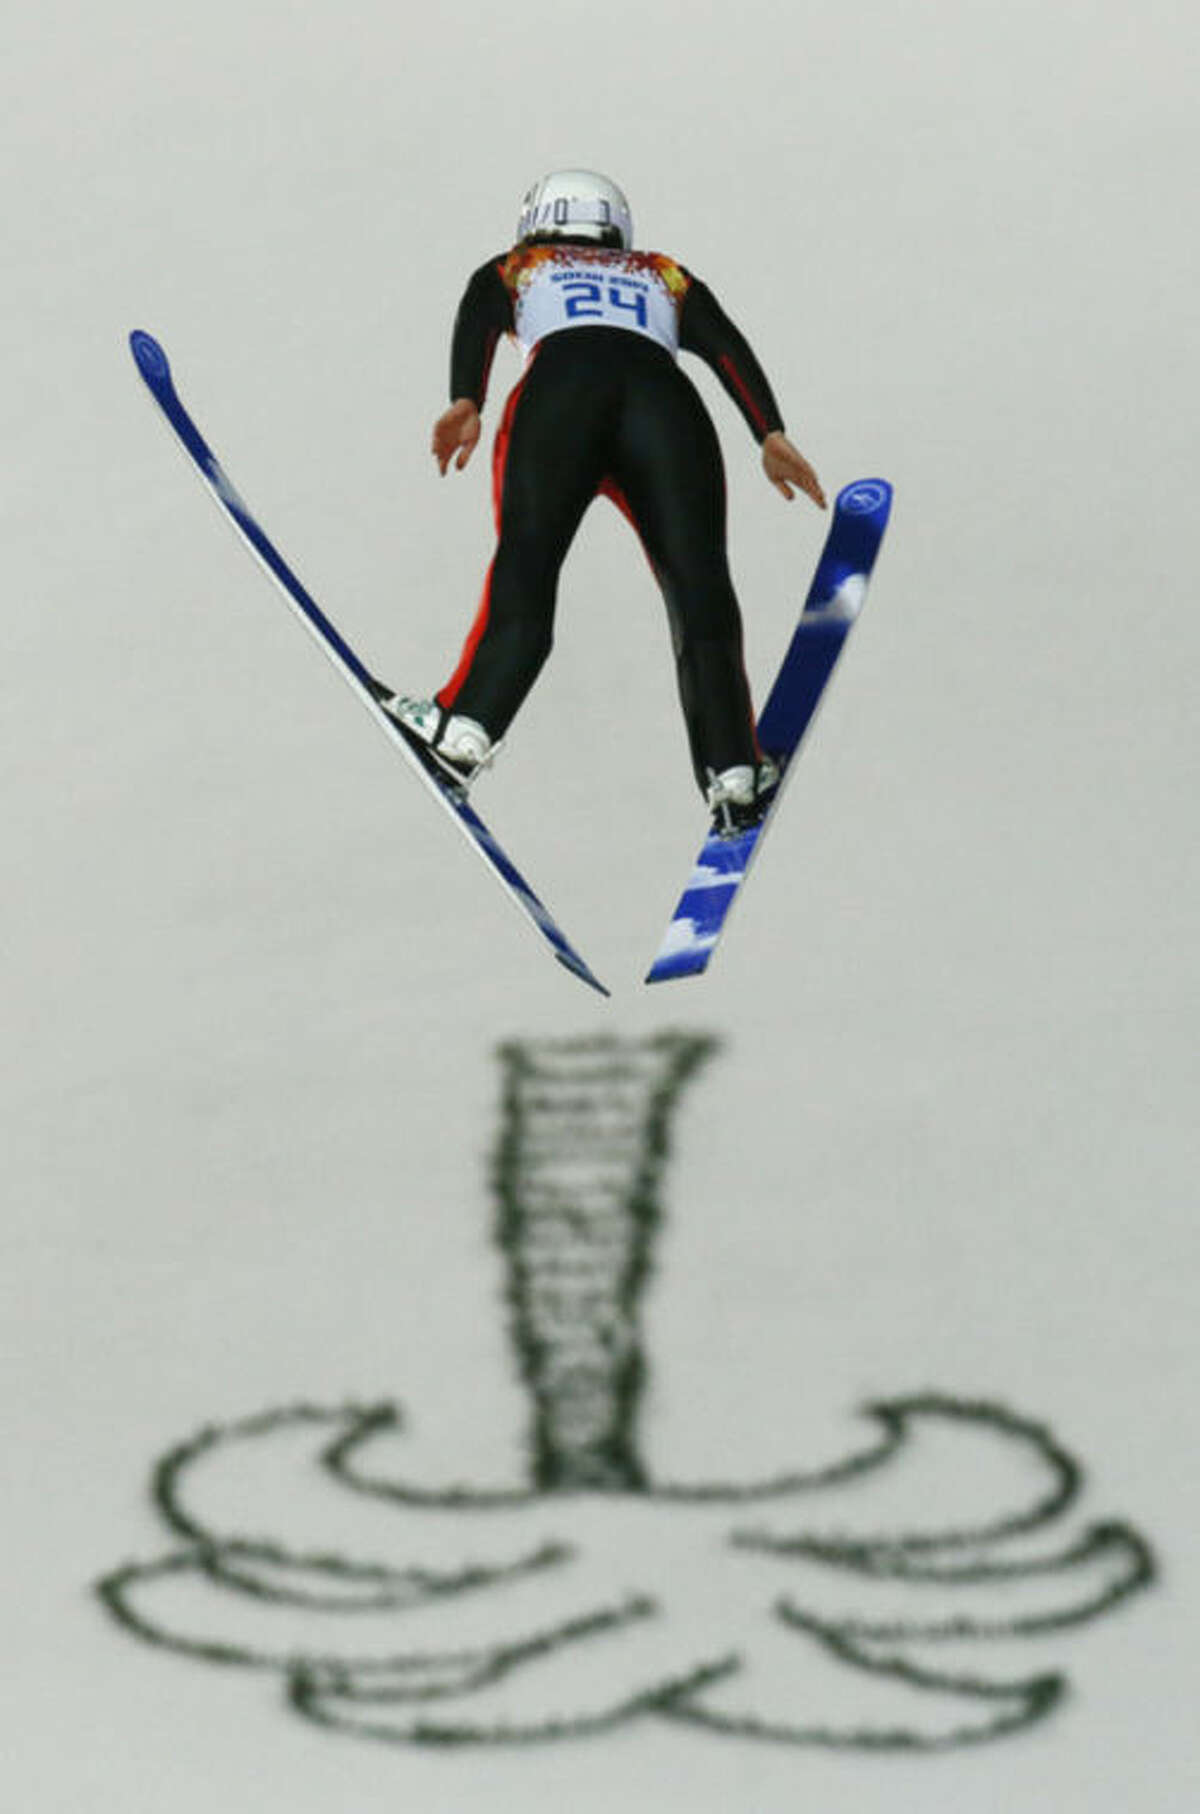 France's Coline Mattel makes her first attempt during the women's normal hill ski jumping final at the 2014 Winter Olympics, Tuesday, Feb. 11, 2014, in Krasnaya Polyana, Russia. (AP Photo/Gregorio Borgia)